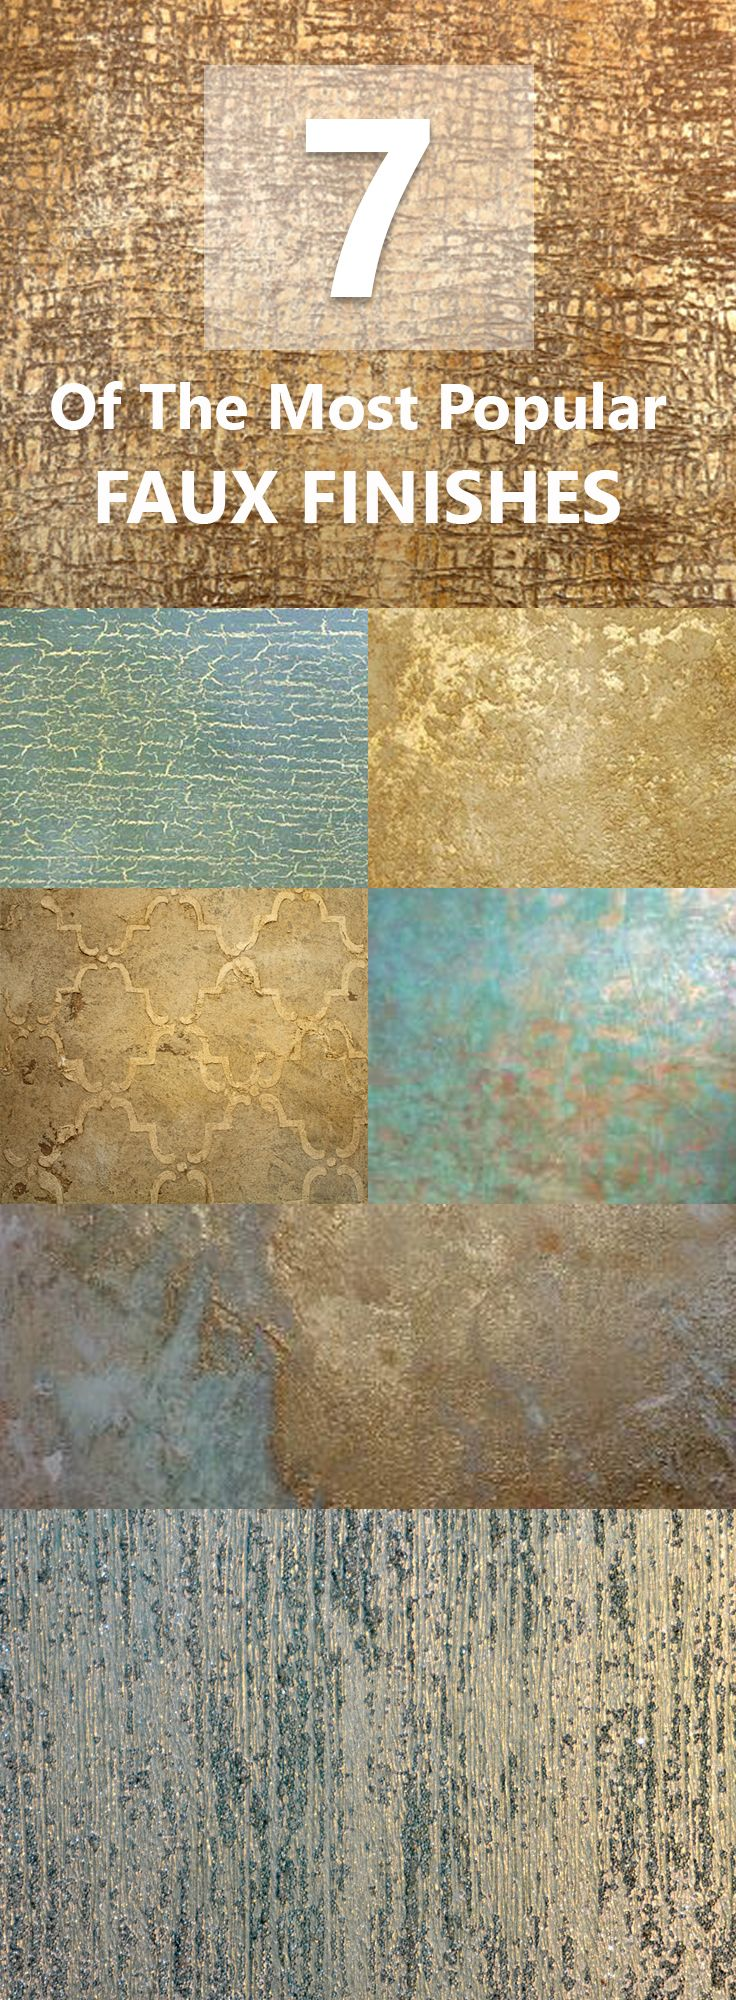 Faux Finishes For Walls : Sponge painting color schemes amazing babs decorative